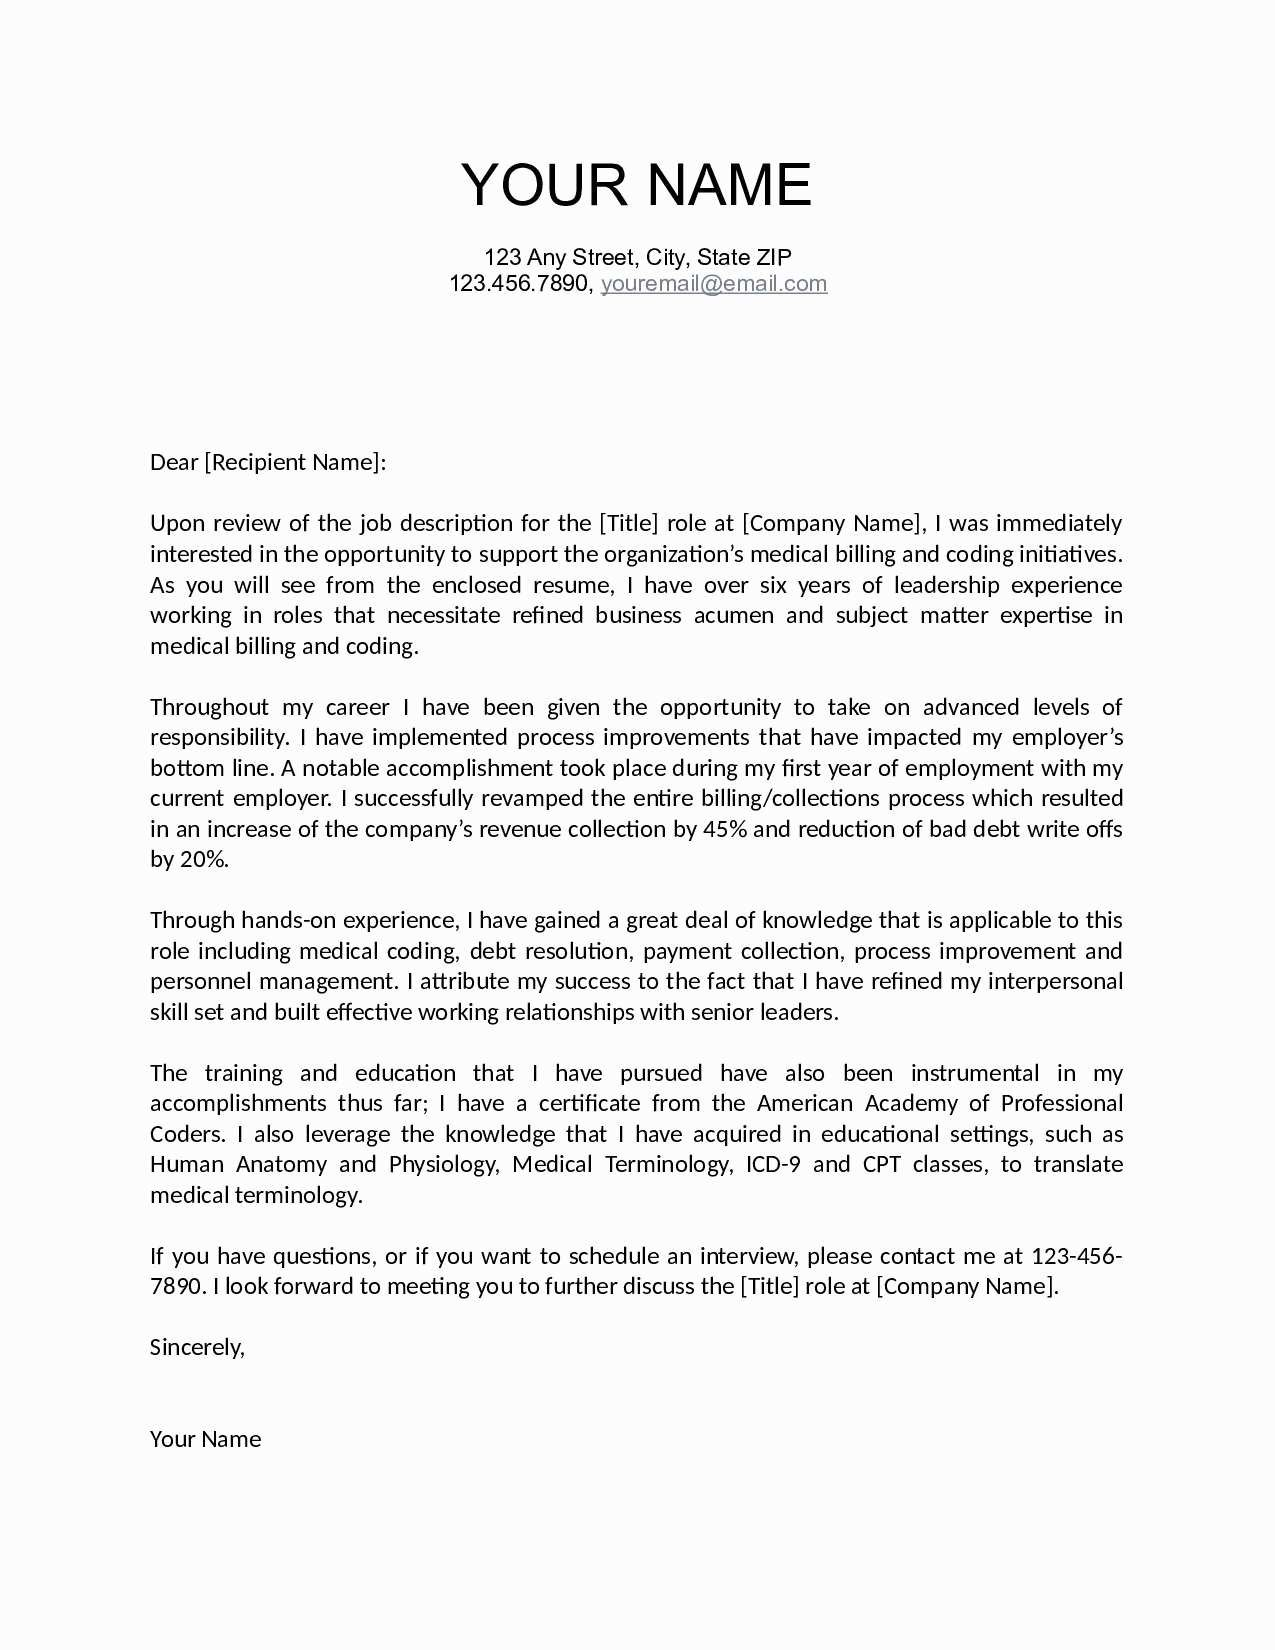 Basic Cover Letter Template Word - Covering Letter for Work Experience Best Job Fer Letter Template